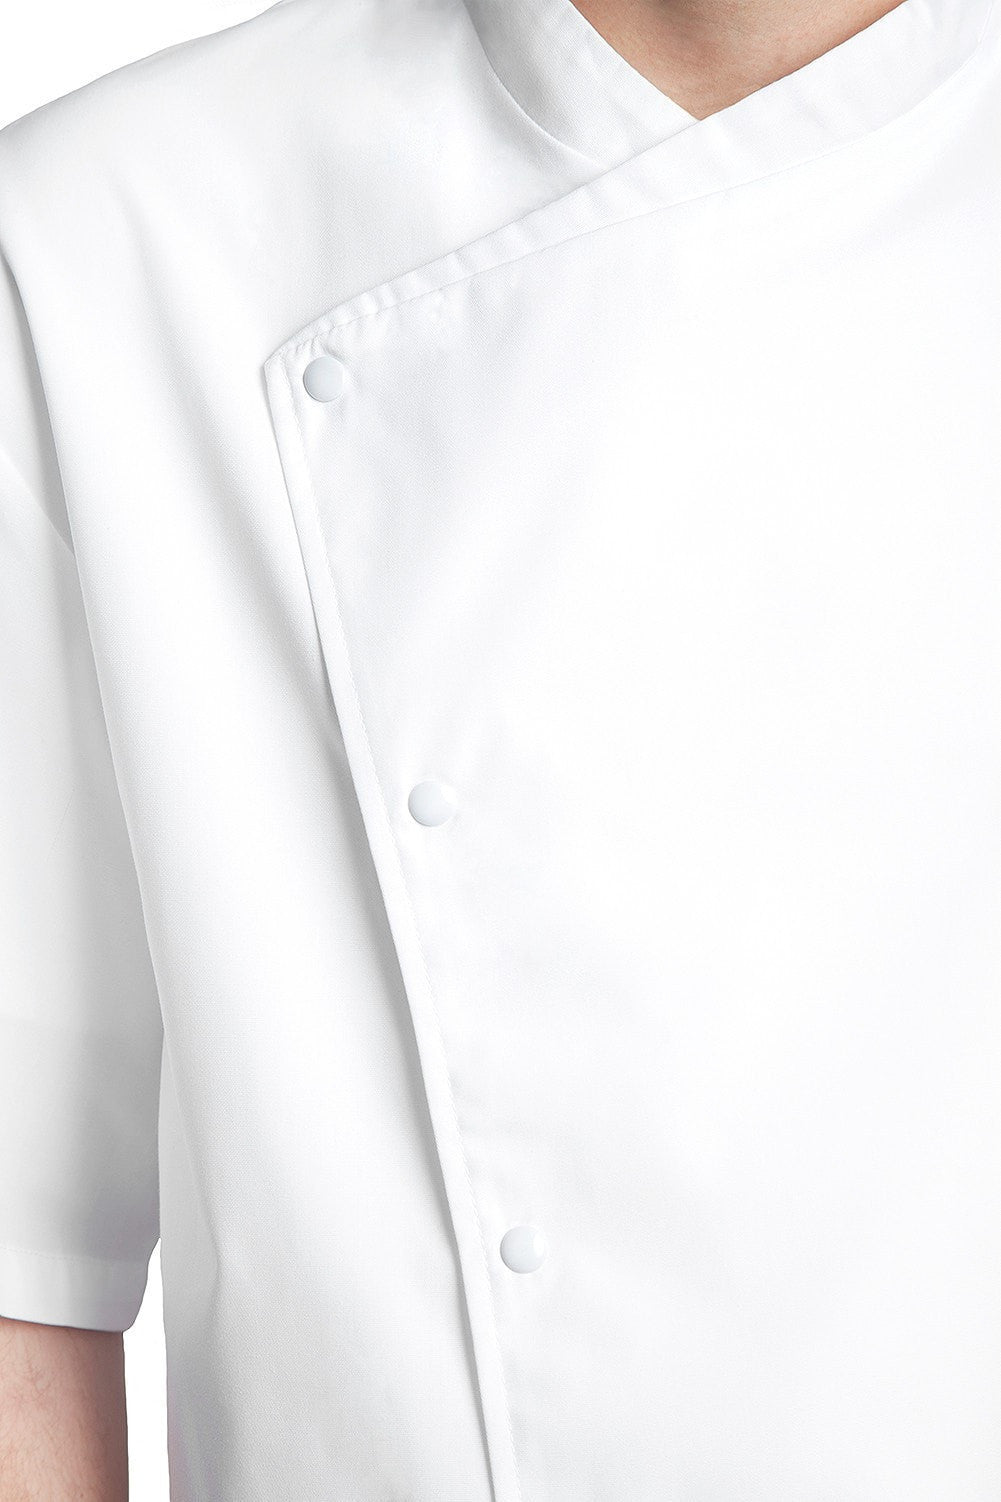 Julius Short Sleeve Chef Jacket by Bragard Front Close Up